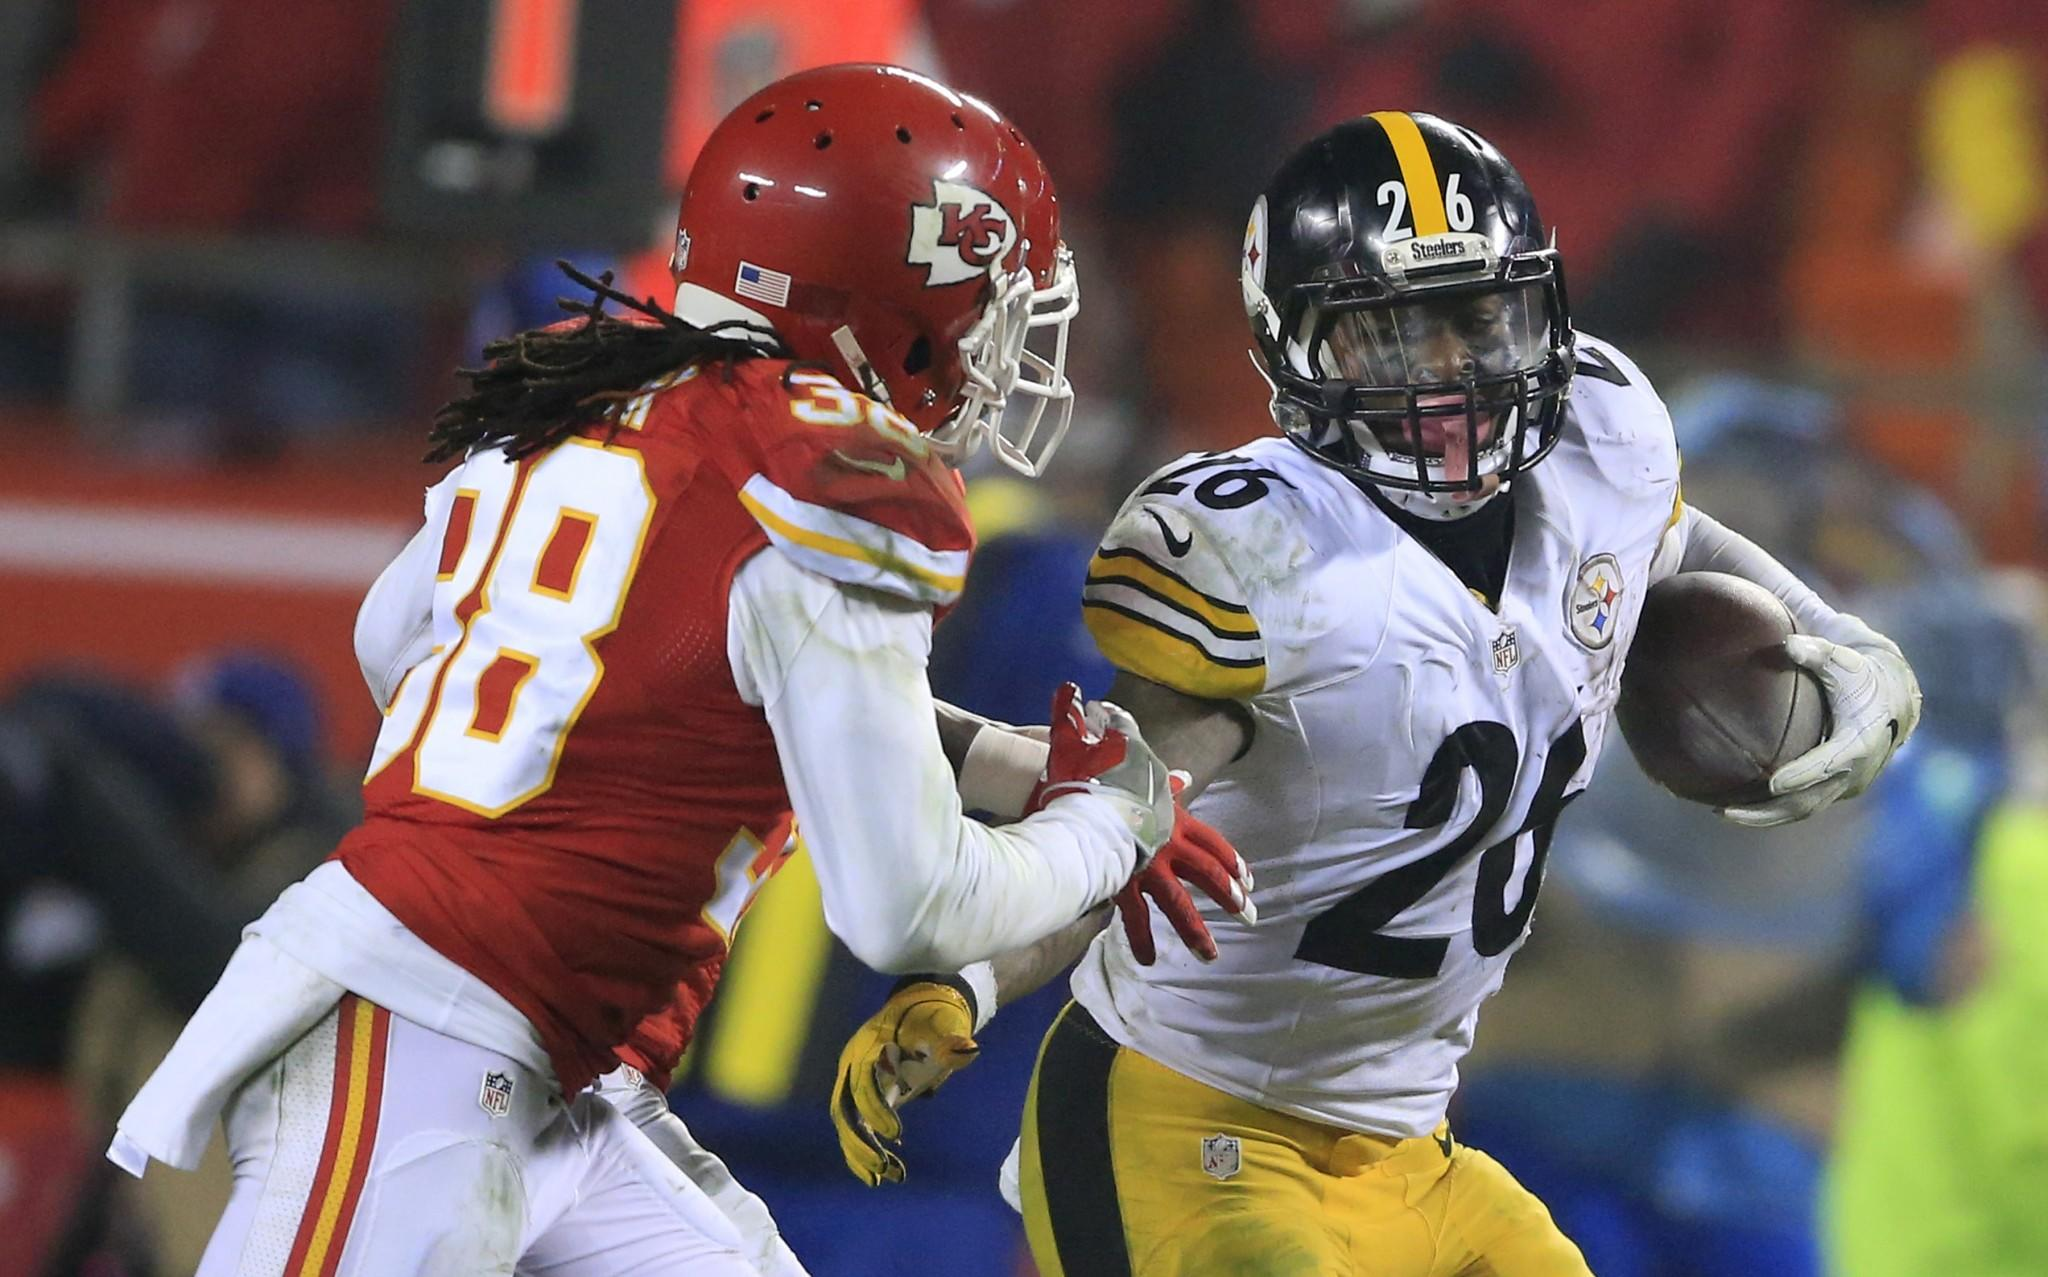 Le Veon Bell sets playoff rushing record as Steelers beat Chiefs